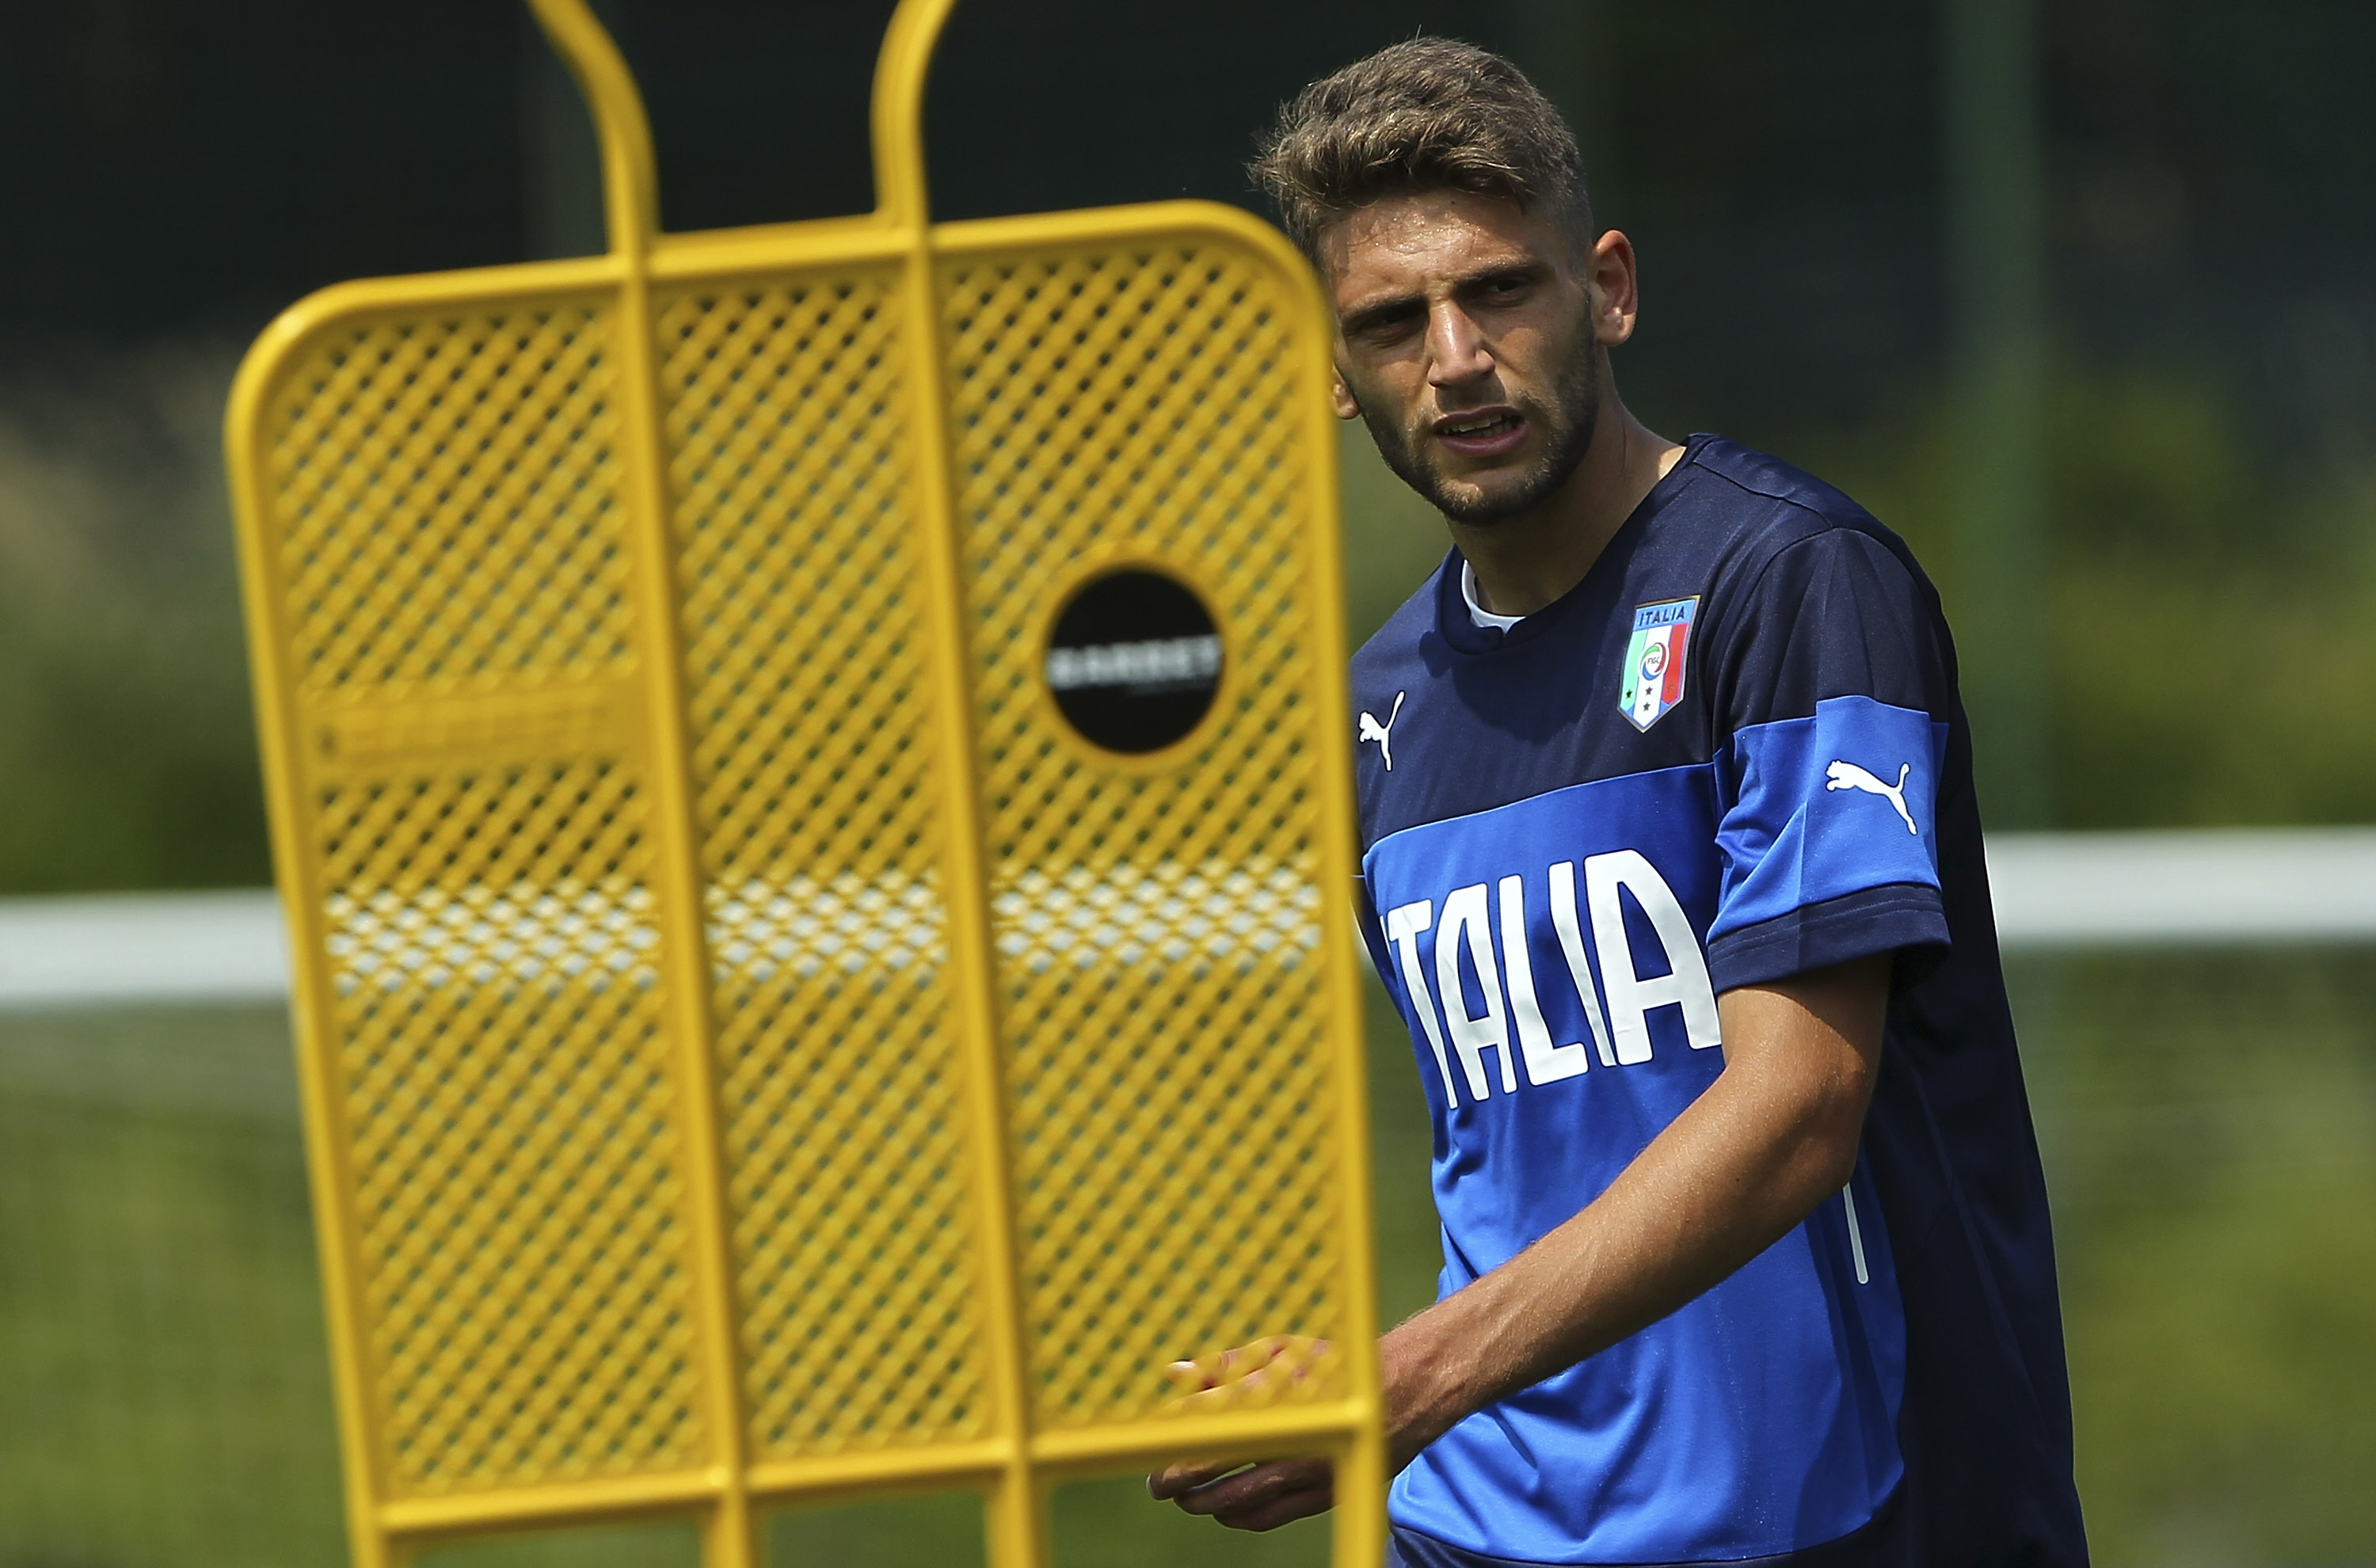 COMO, ITALY - JUNE 04:  Domenico Berardi of Italy U21 looks on during Italy U21 training session at the club's training ground on June 4, 2015 in Appiano Gentile Como, Italy.  (Photo by Marco Luzzani/Getty Images)